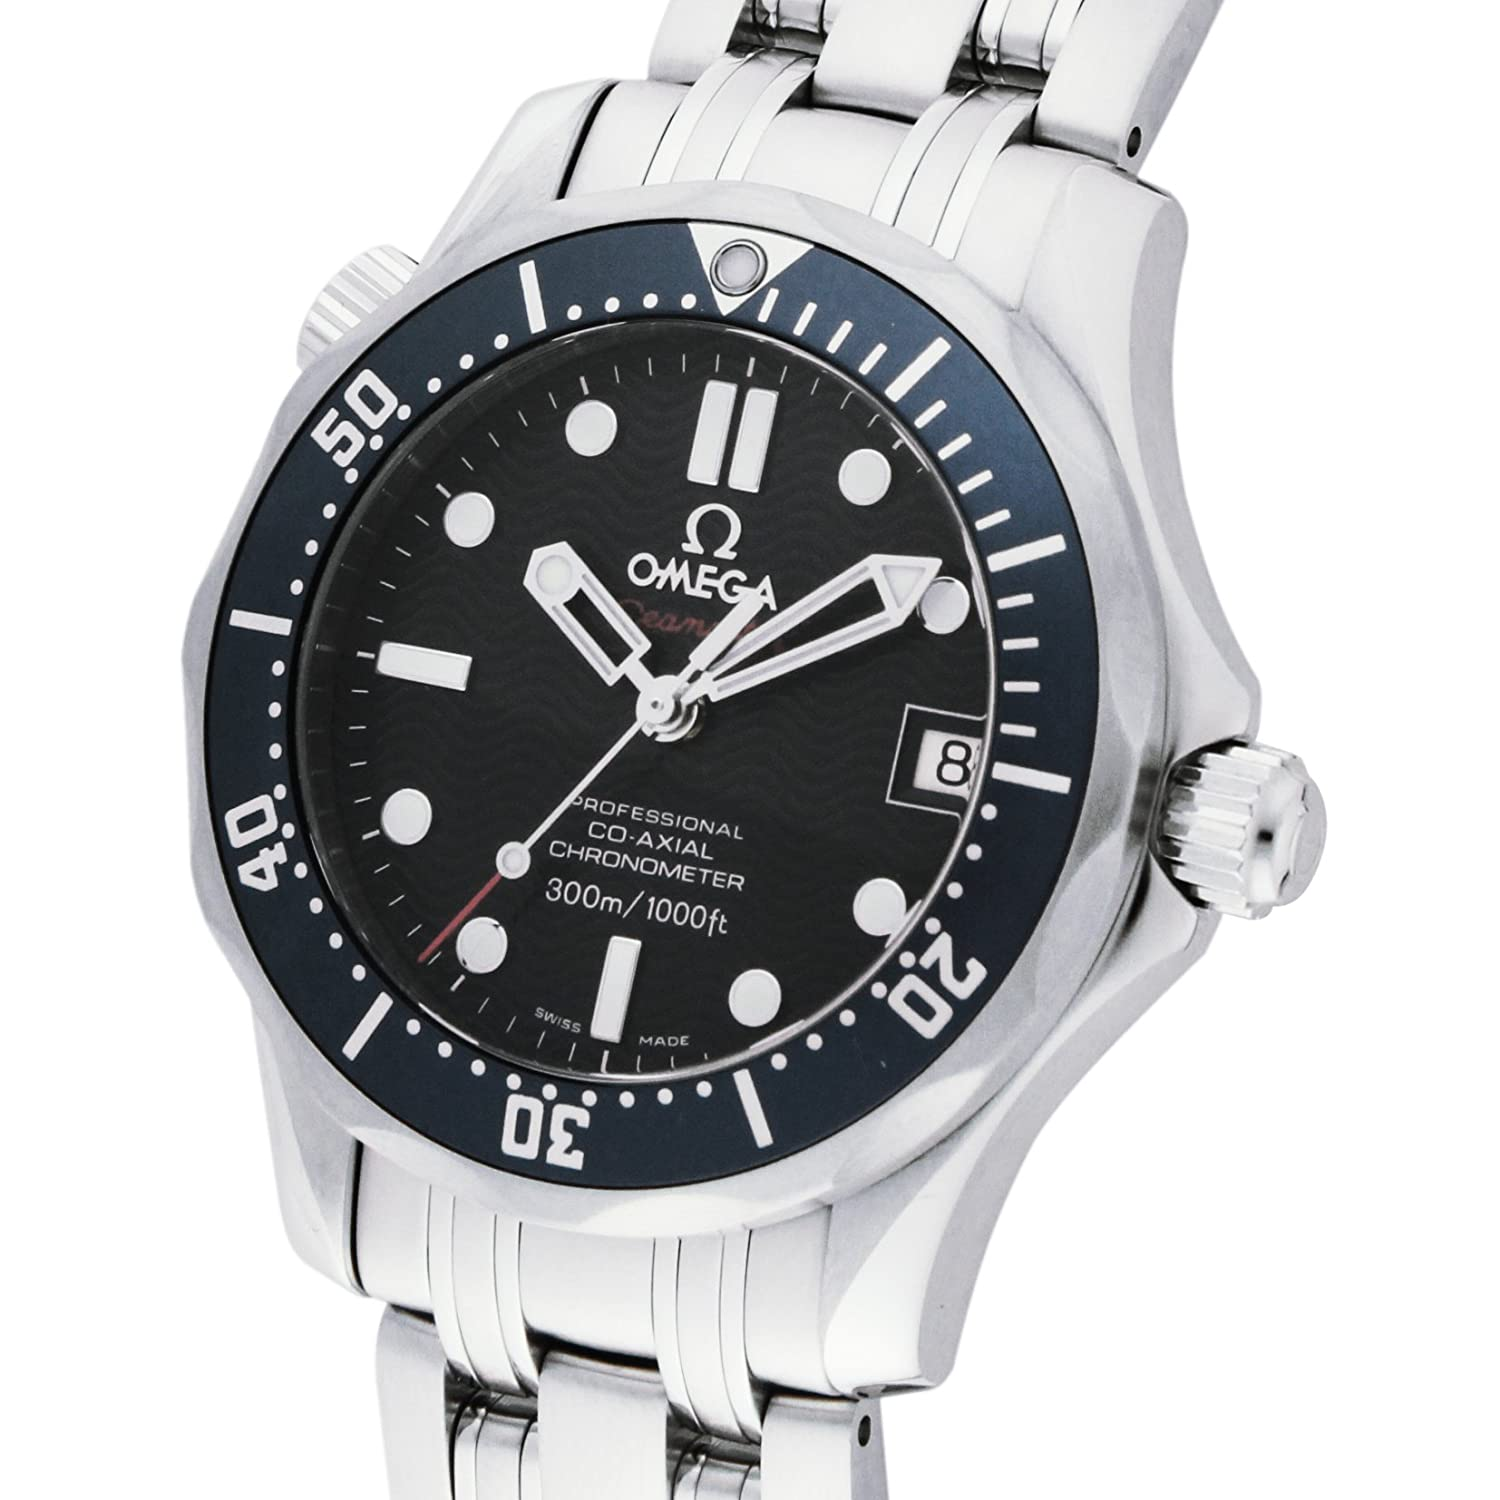 0bef169f2bd0 Amazon.com  Omega Men s 2222.80.00 Seamaster 300M Chronometer  Omega   Watches